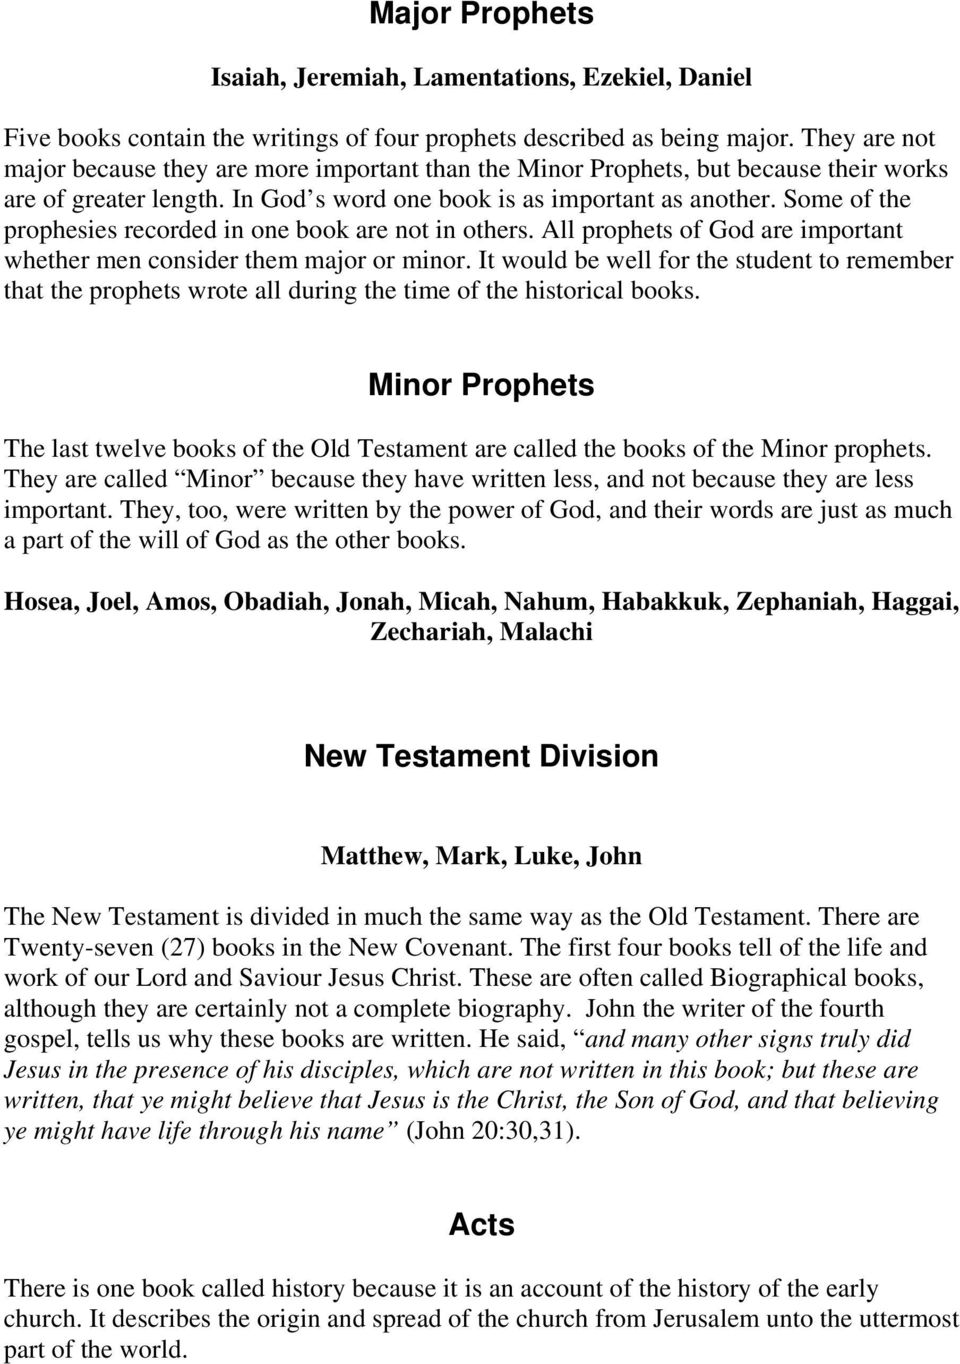 Some of the prophesies recorded in one book are not in others. All prophets of God are important whether men consider them major or minor.